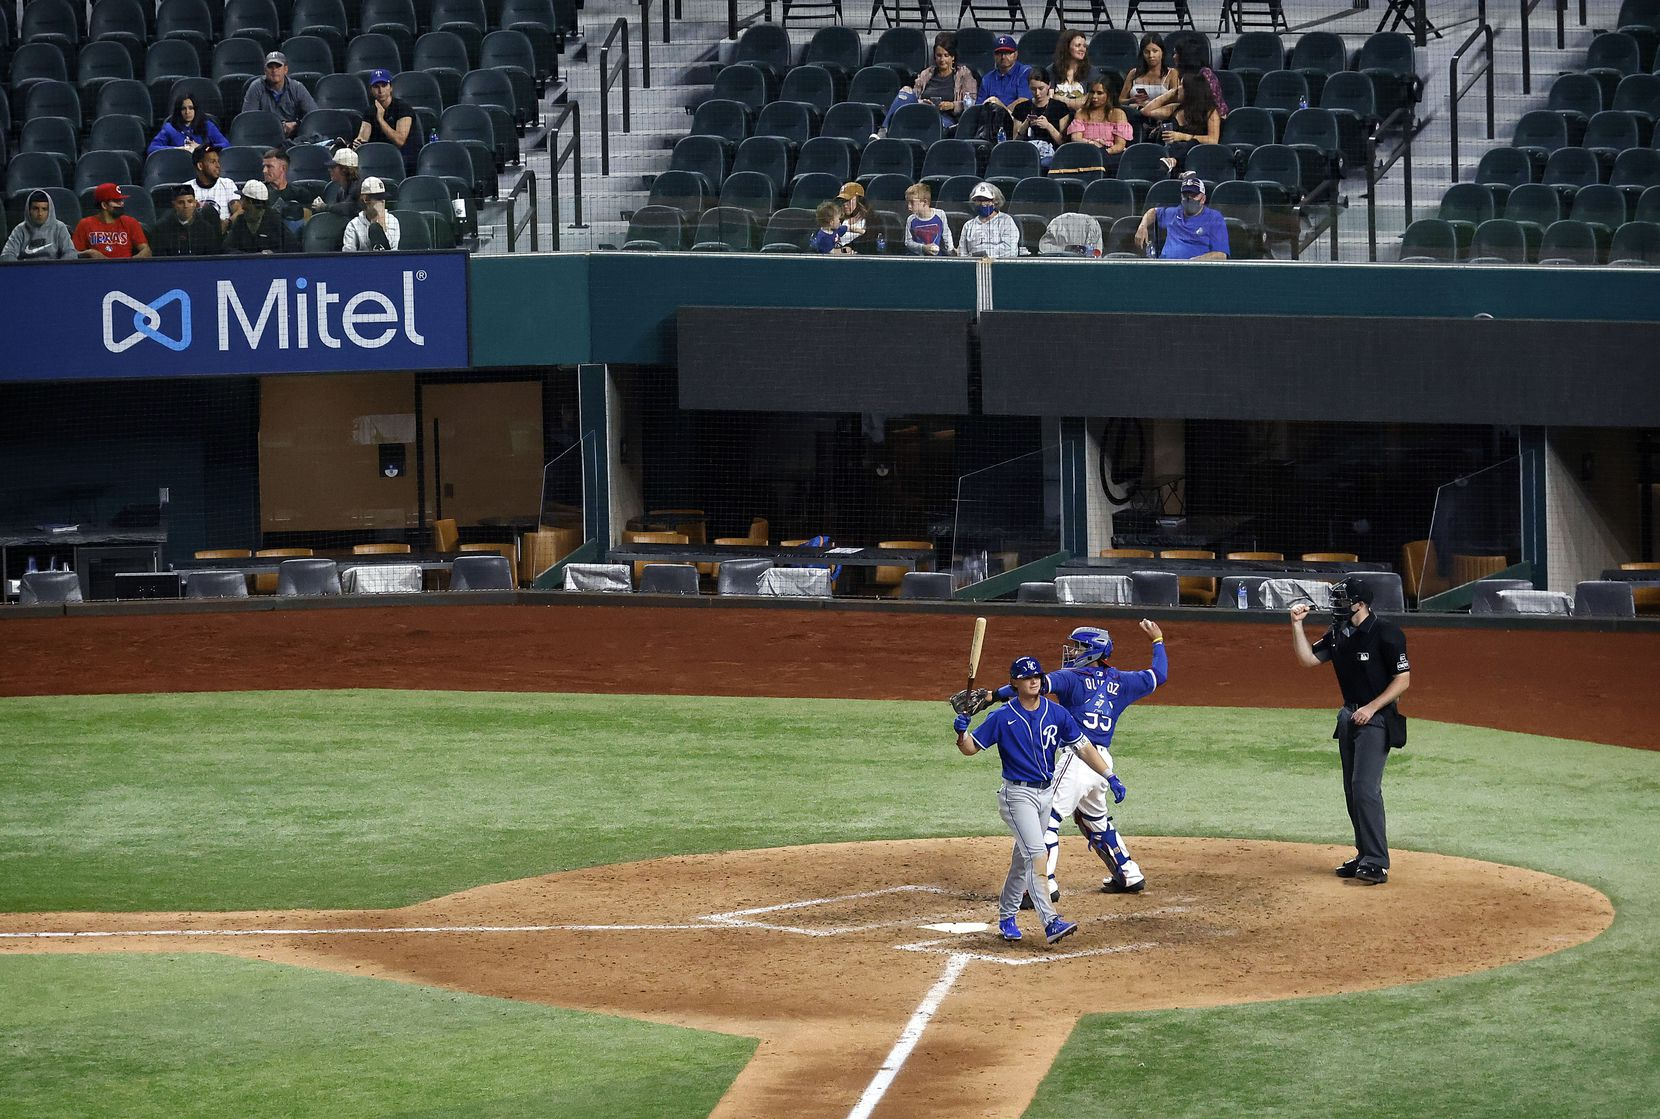 Former Colleyville Heritage shortstop Bobby Witt Jr., the No. 2 overall pick in the 2019 draft, strikes out against the Texas Rangers minor leaguers.